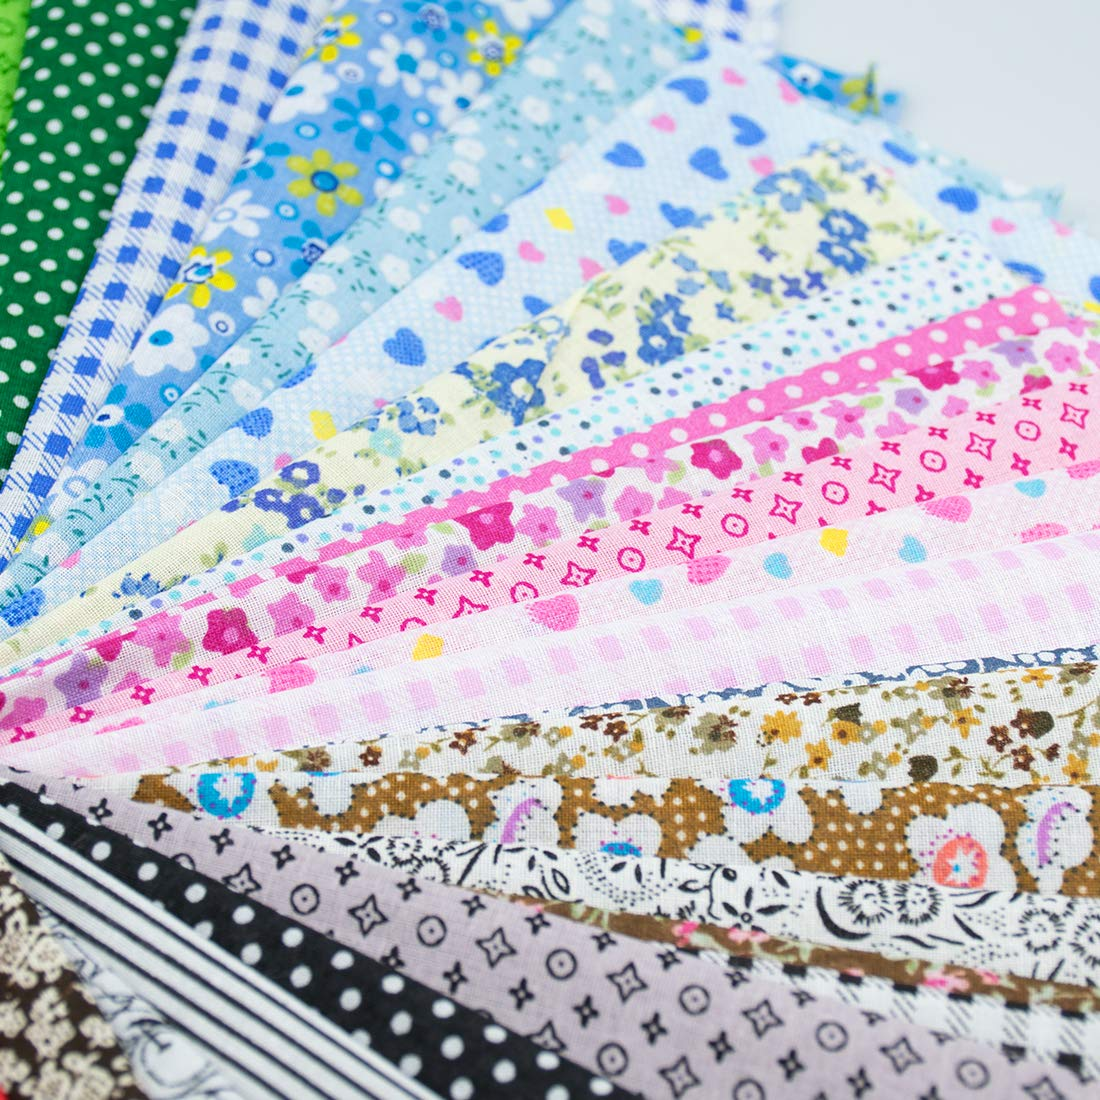 Foraineam 60 PCS Different Designs9.8'' x 9.8'' (25cm x 25cm) Cotton Craft Fabric Bundle Printed Patchwork Squares for DIY Sewing Quilting Scrapbooking by Foraineam (Image #4)